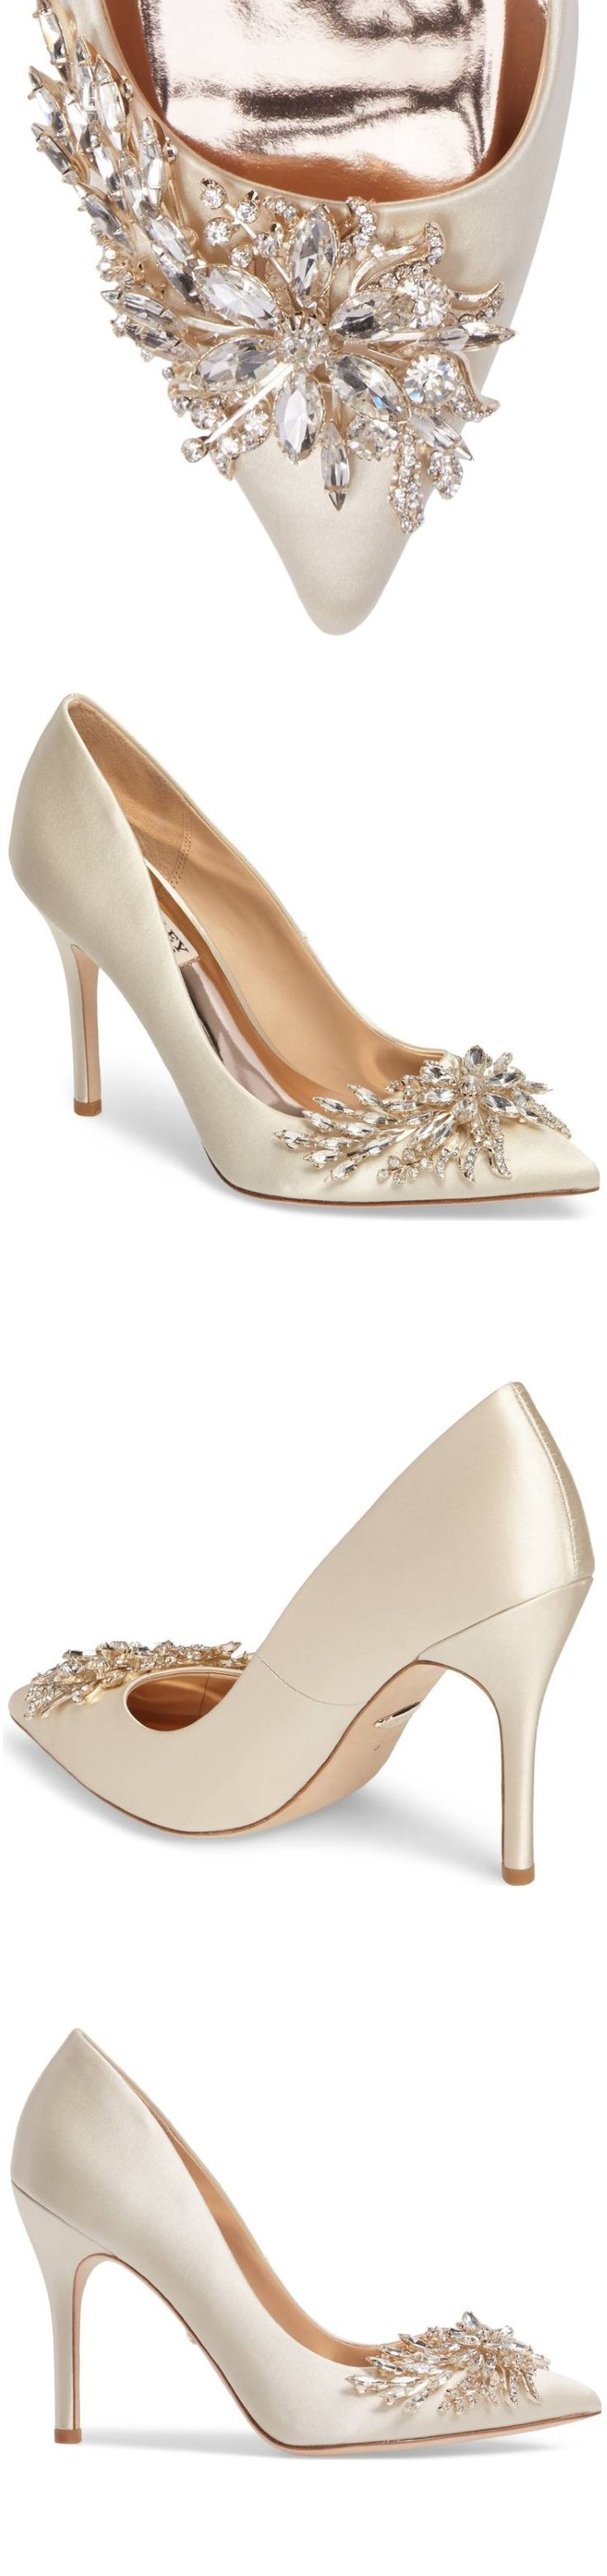 Winter Wedding Shoes || Embellished Bridal Shoes | Pointed Toe Bridal Shoes